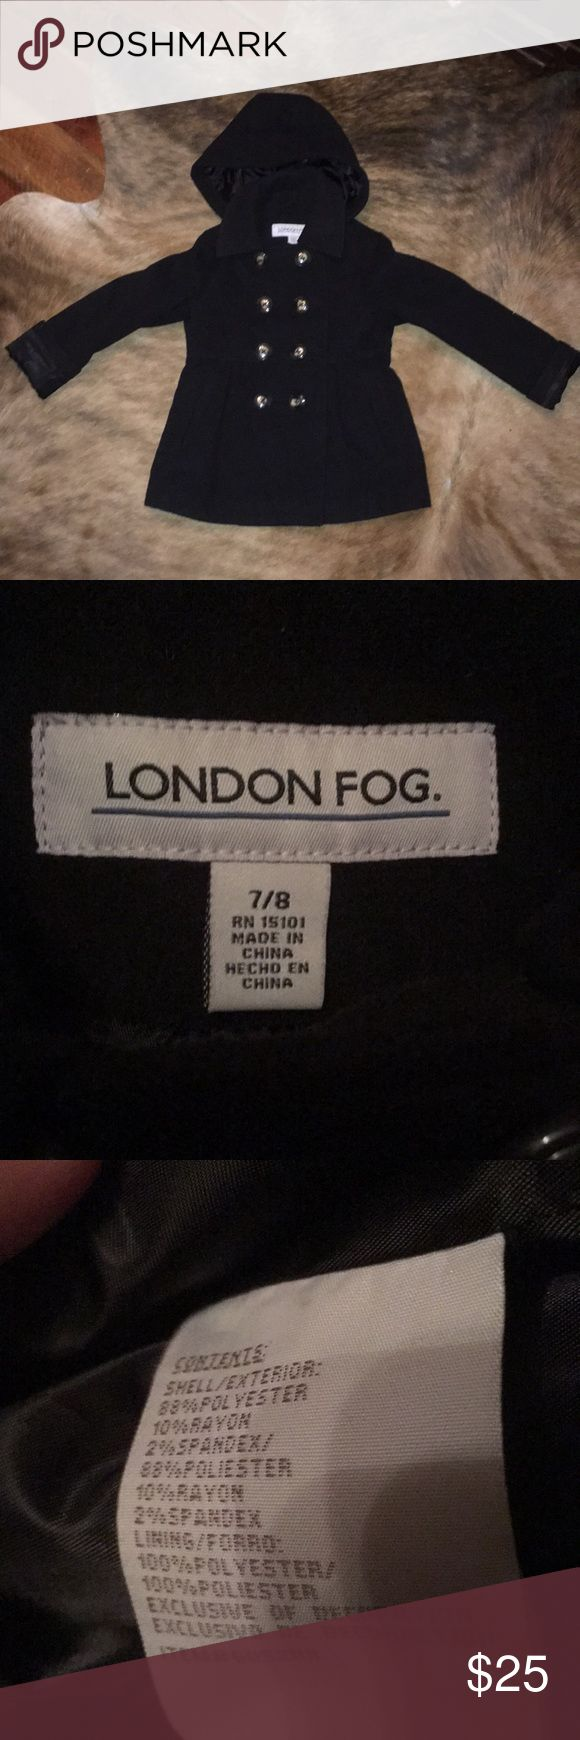 London Fog Girls Peacoat, 7/8 Used but in great condition! London Fog Jackets & Coats Pea Coats